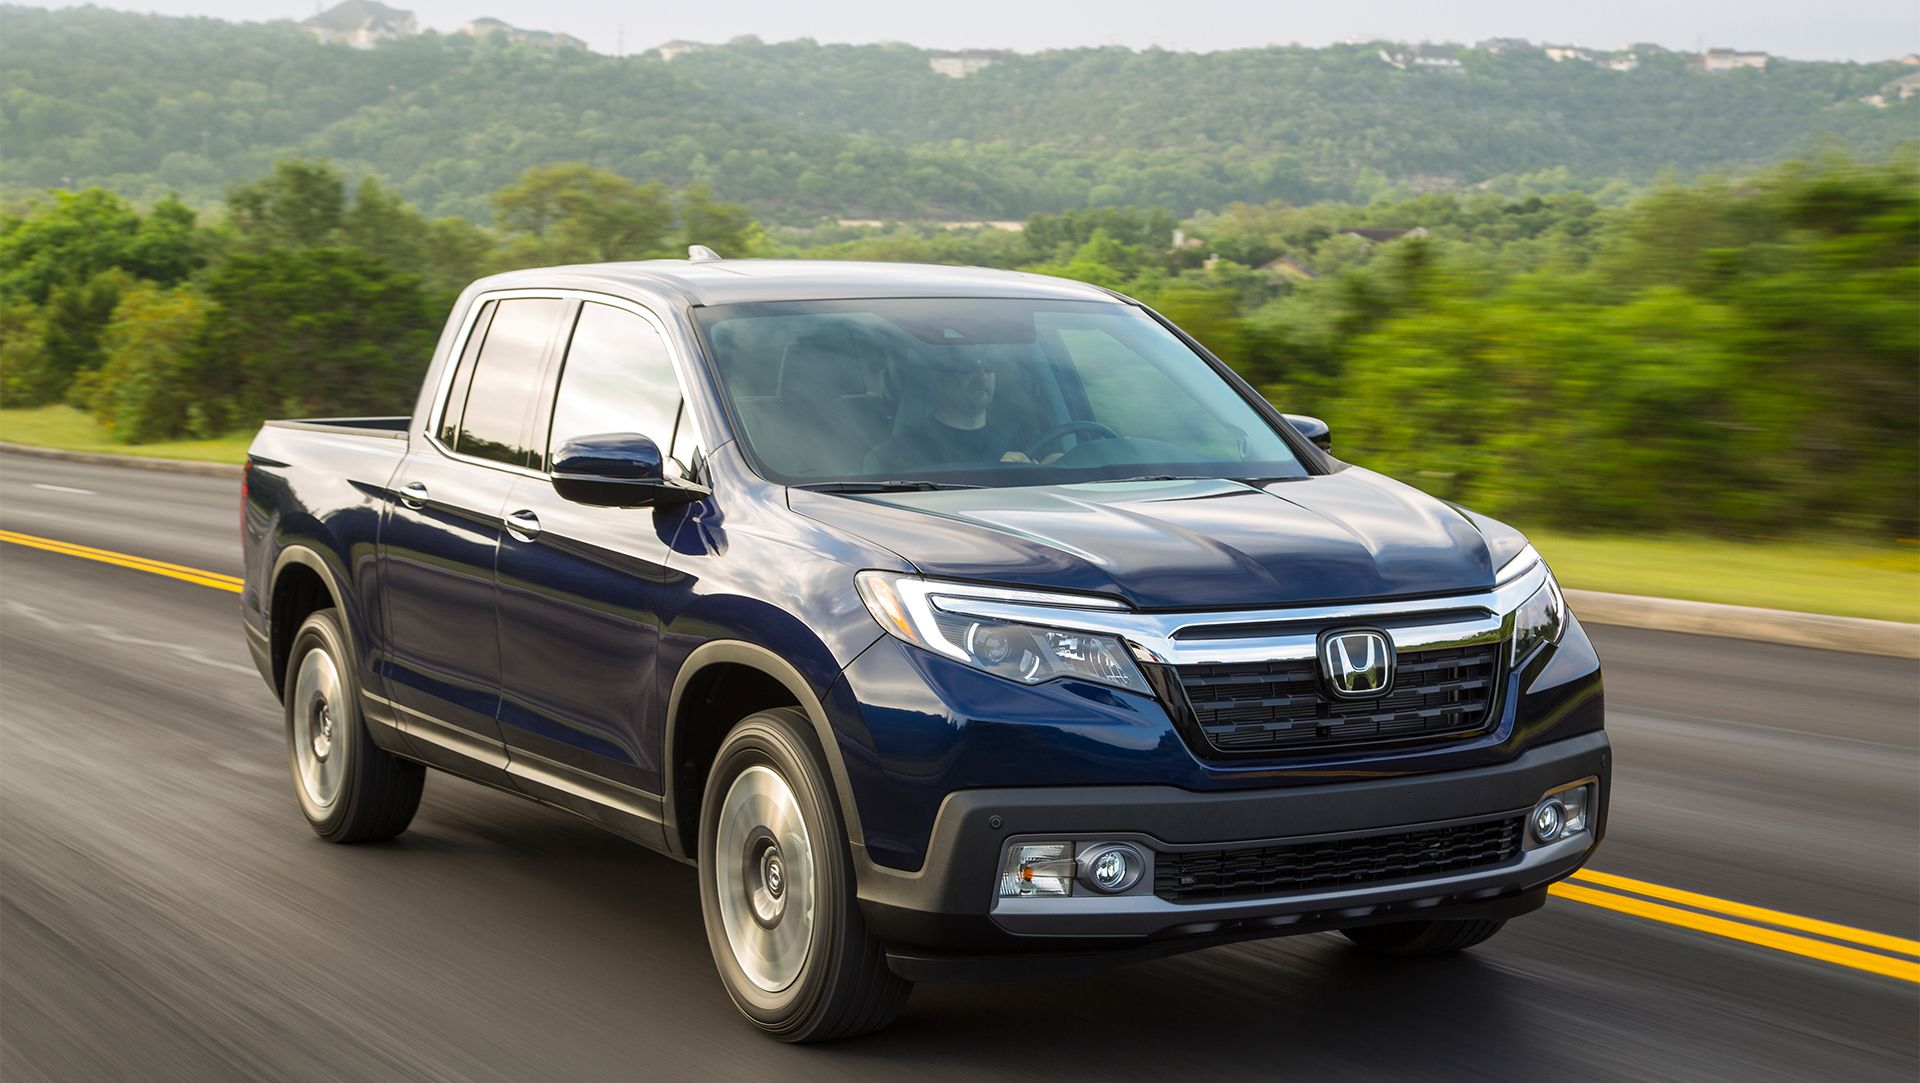 2017 Honda Ridgeline Tops Pickup Trucks in Safety by Earning 5-Star Overall  Vehicle Rating